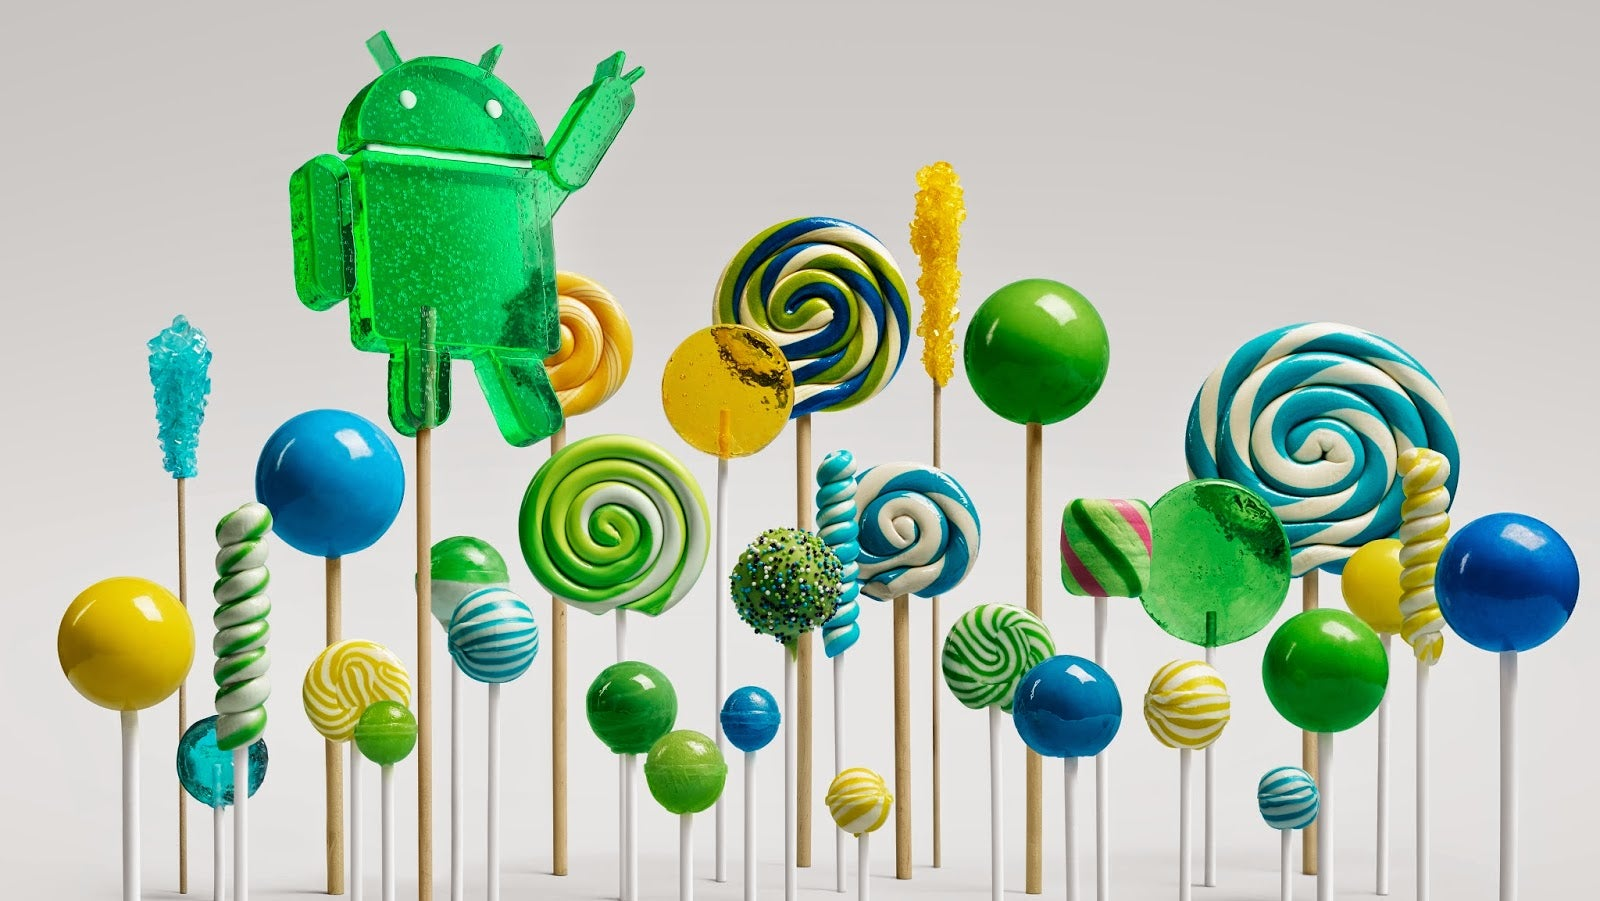 The Best Business Features In Android 5.0 Lollipop